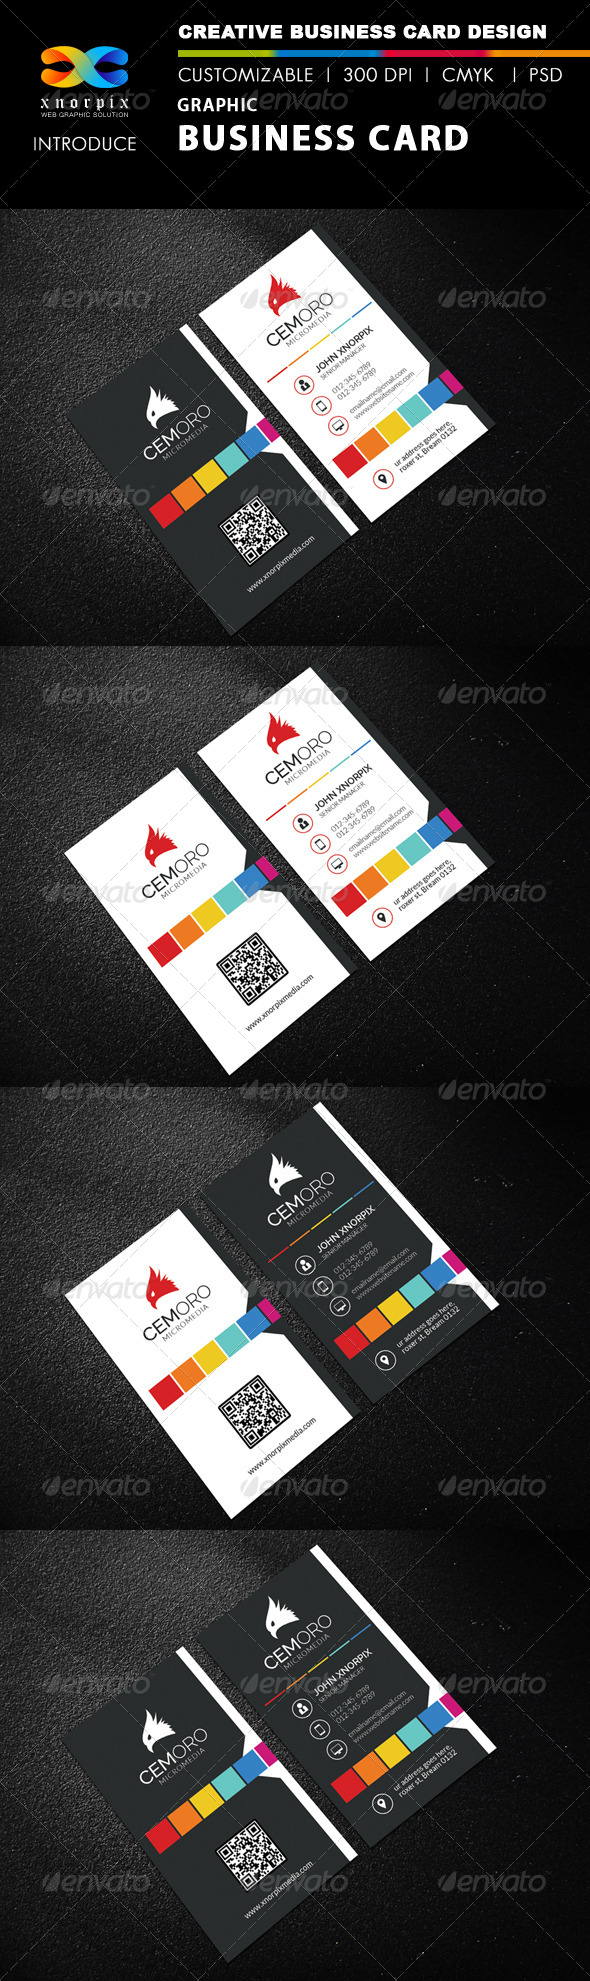 Graphic Business Card